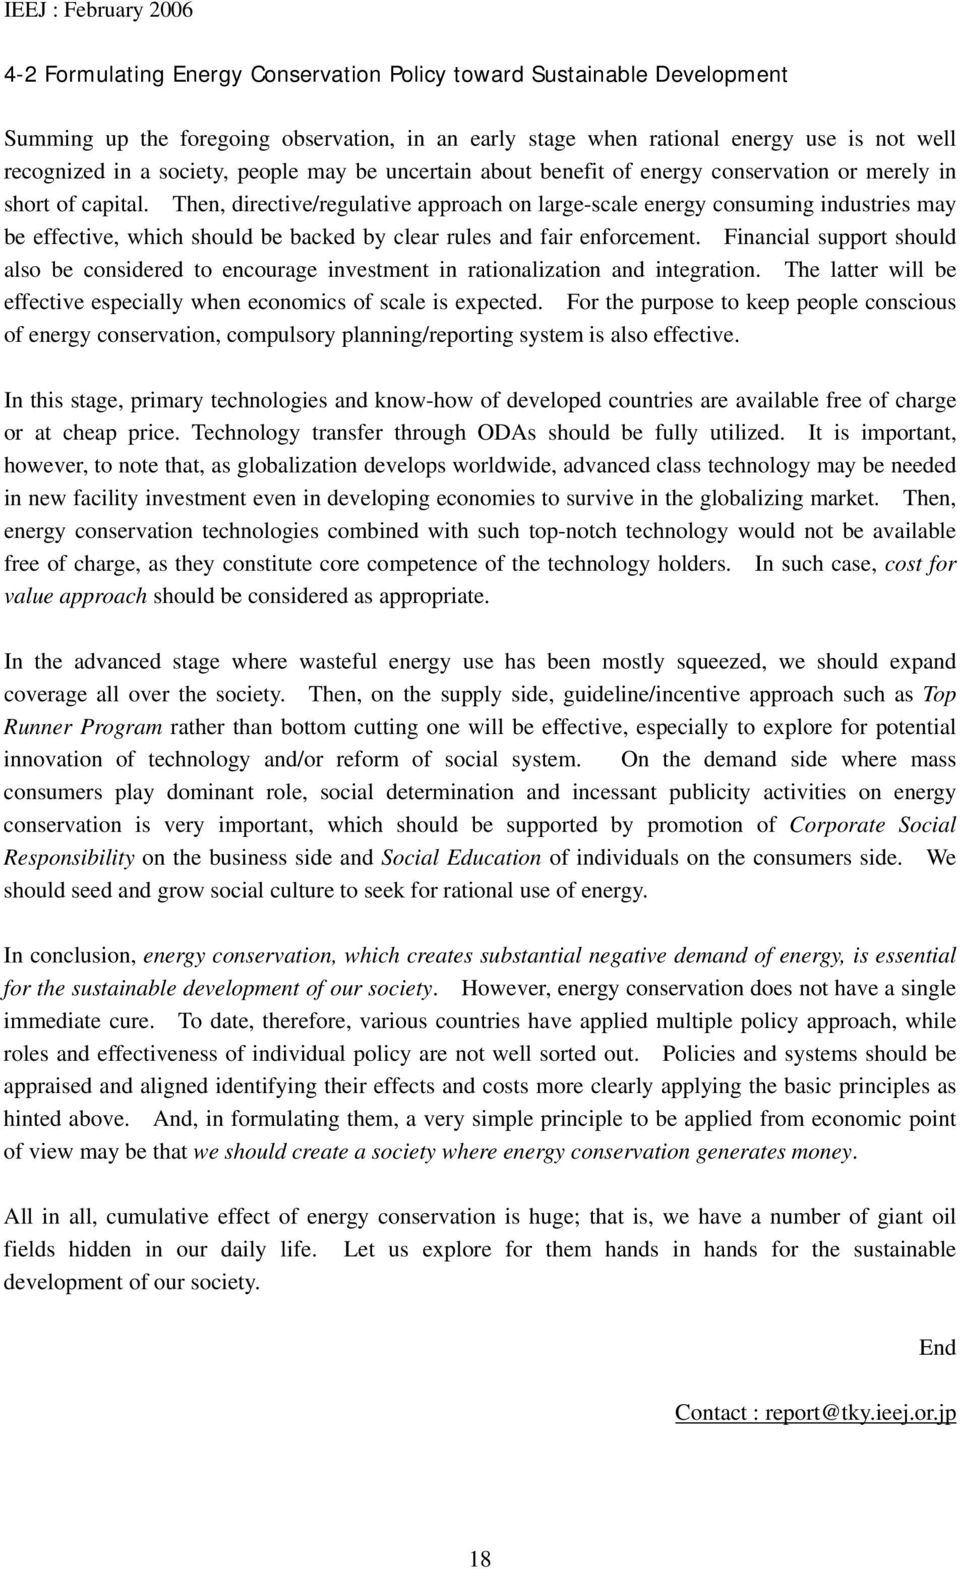 Then, directive/regulative approach on large-scale energy consuming industries may be effective, which should be backed by clear rules and fair enforcement.